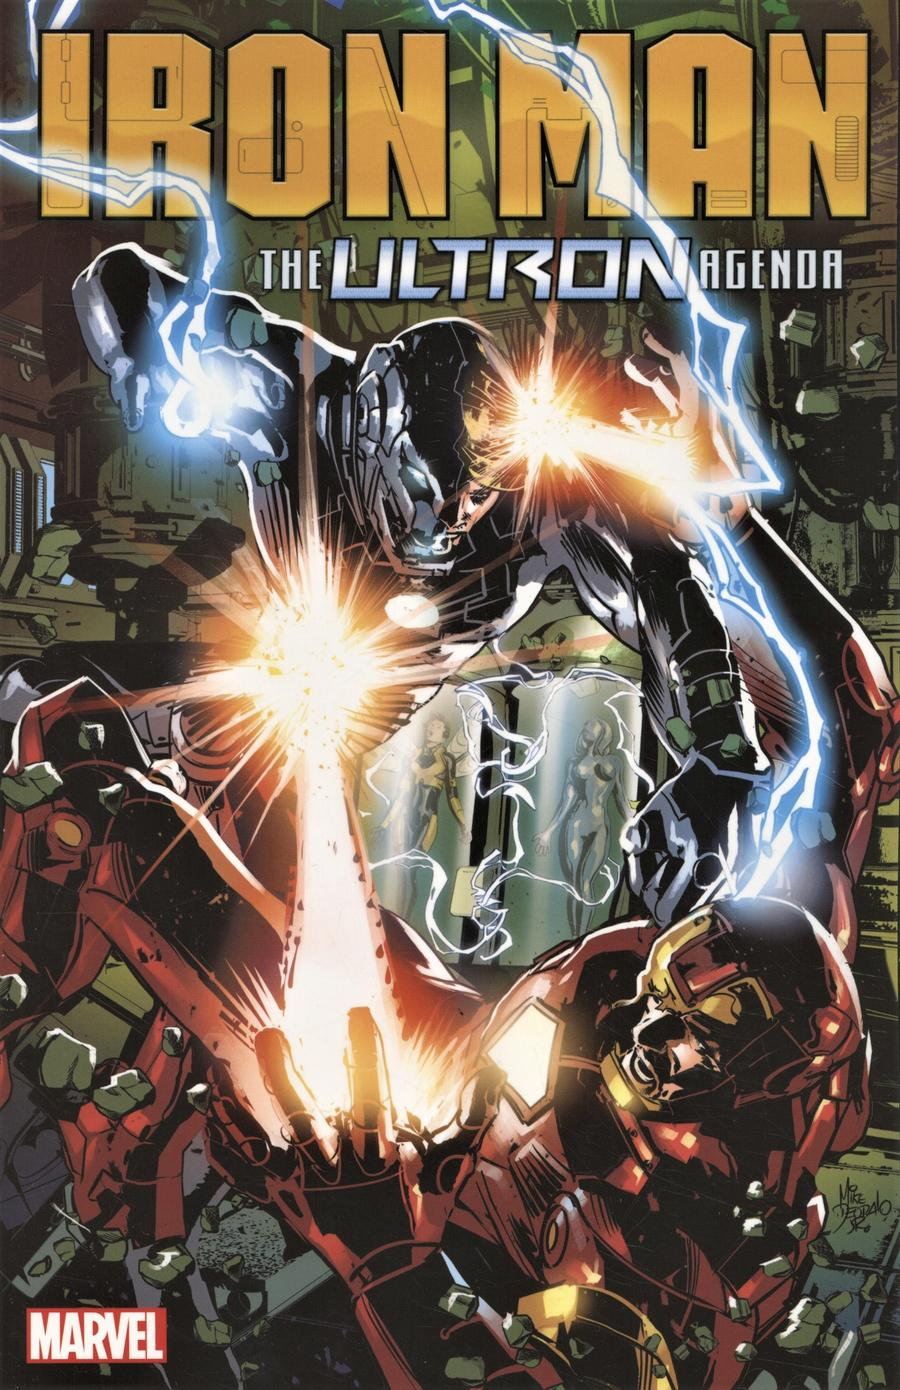 Tony Stark Iron Man Vol 4 Ultron Agenda TP